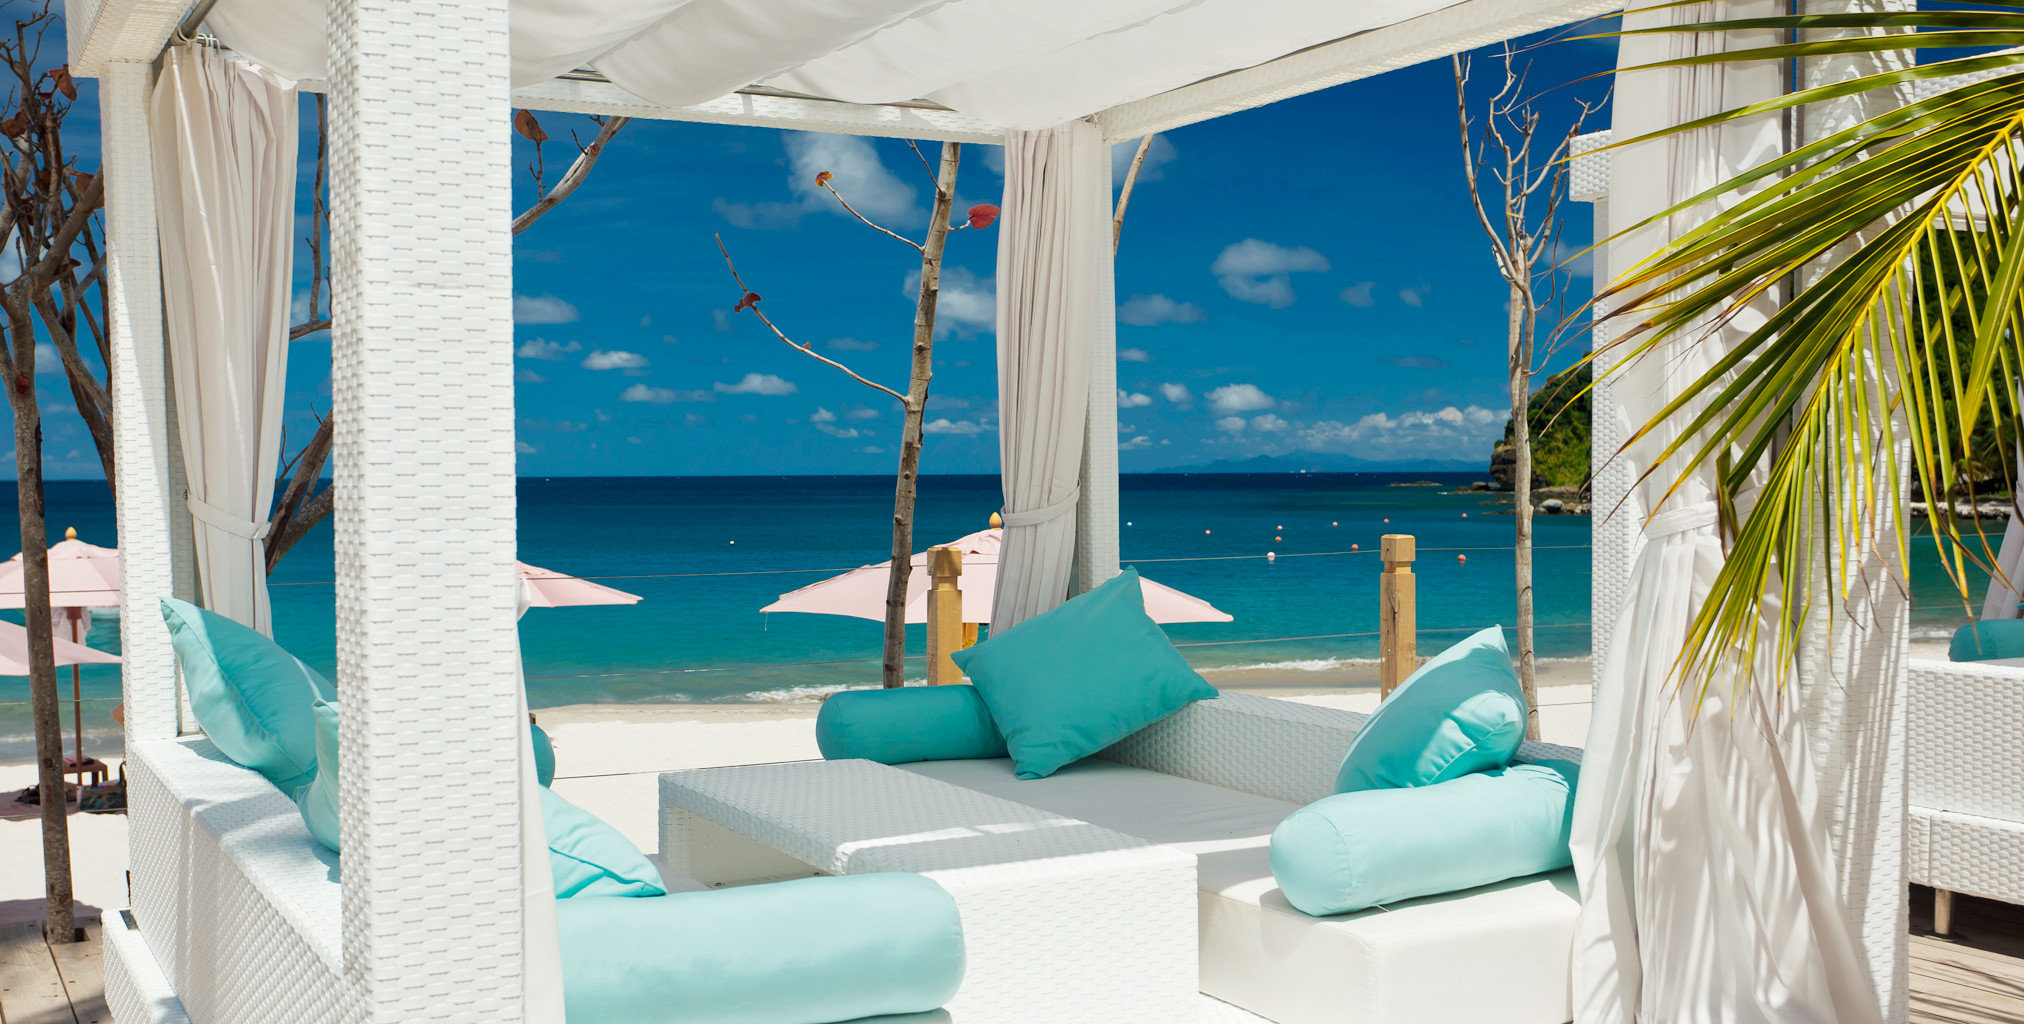 Beach Beachfront Hotels Island Living Wellness blue room chair swimming pool caribbean vacation Resort interior design estate Villa apartment furniture several